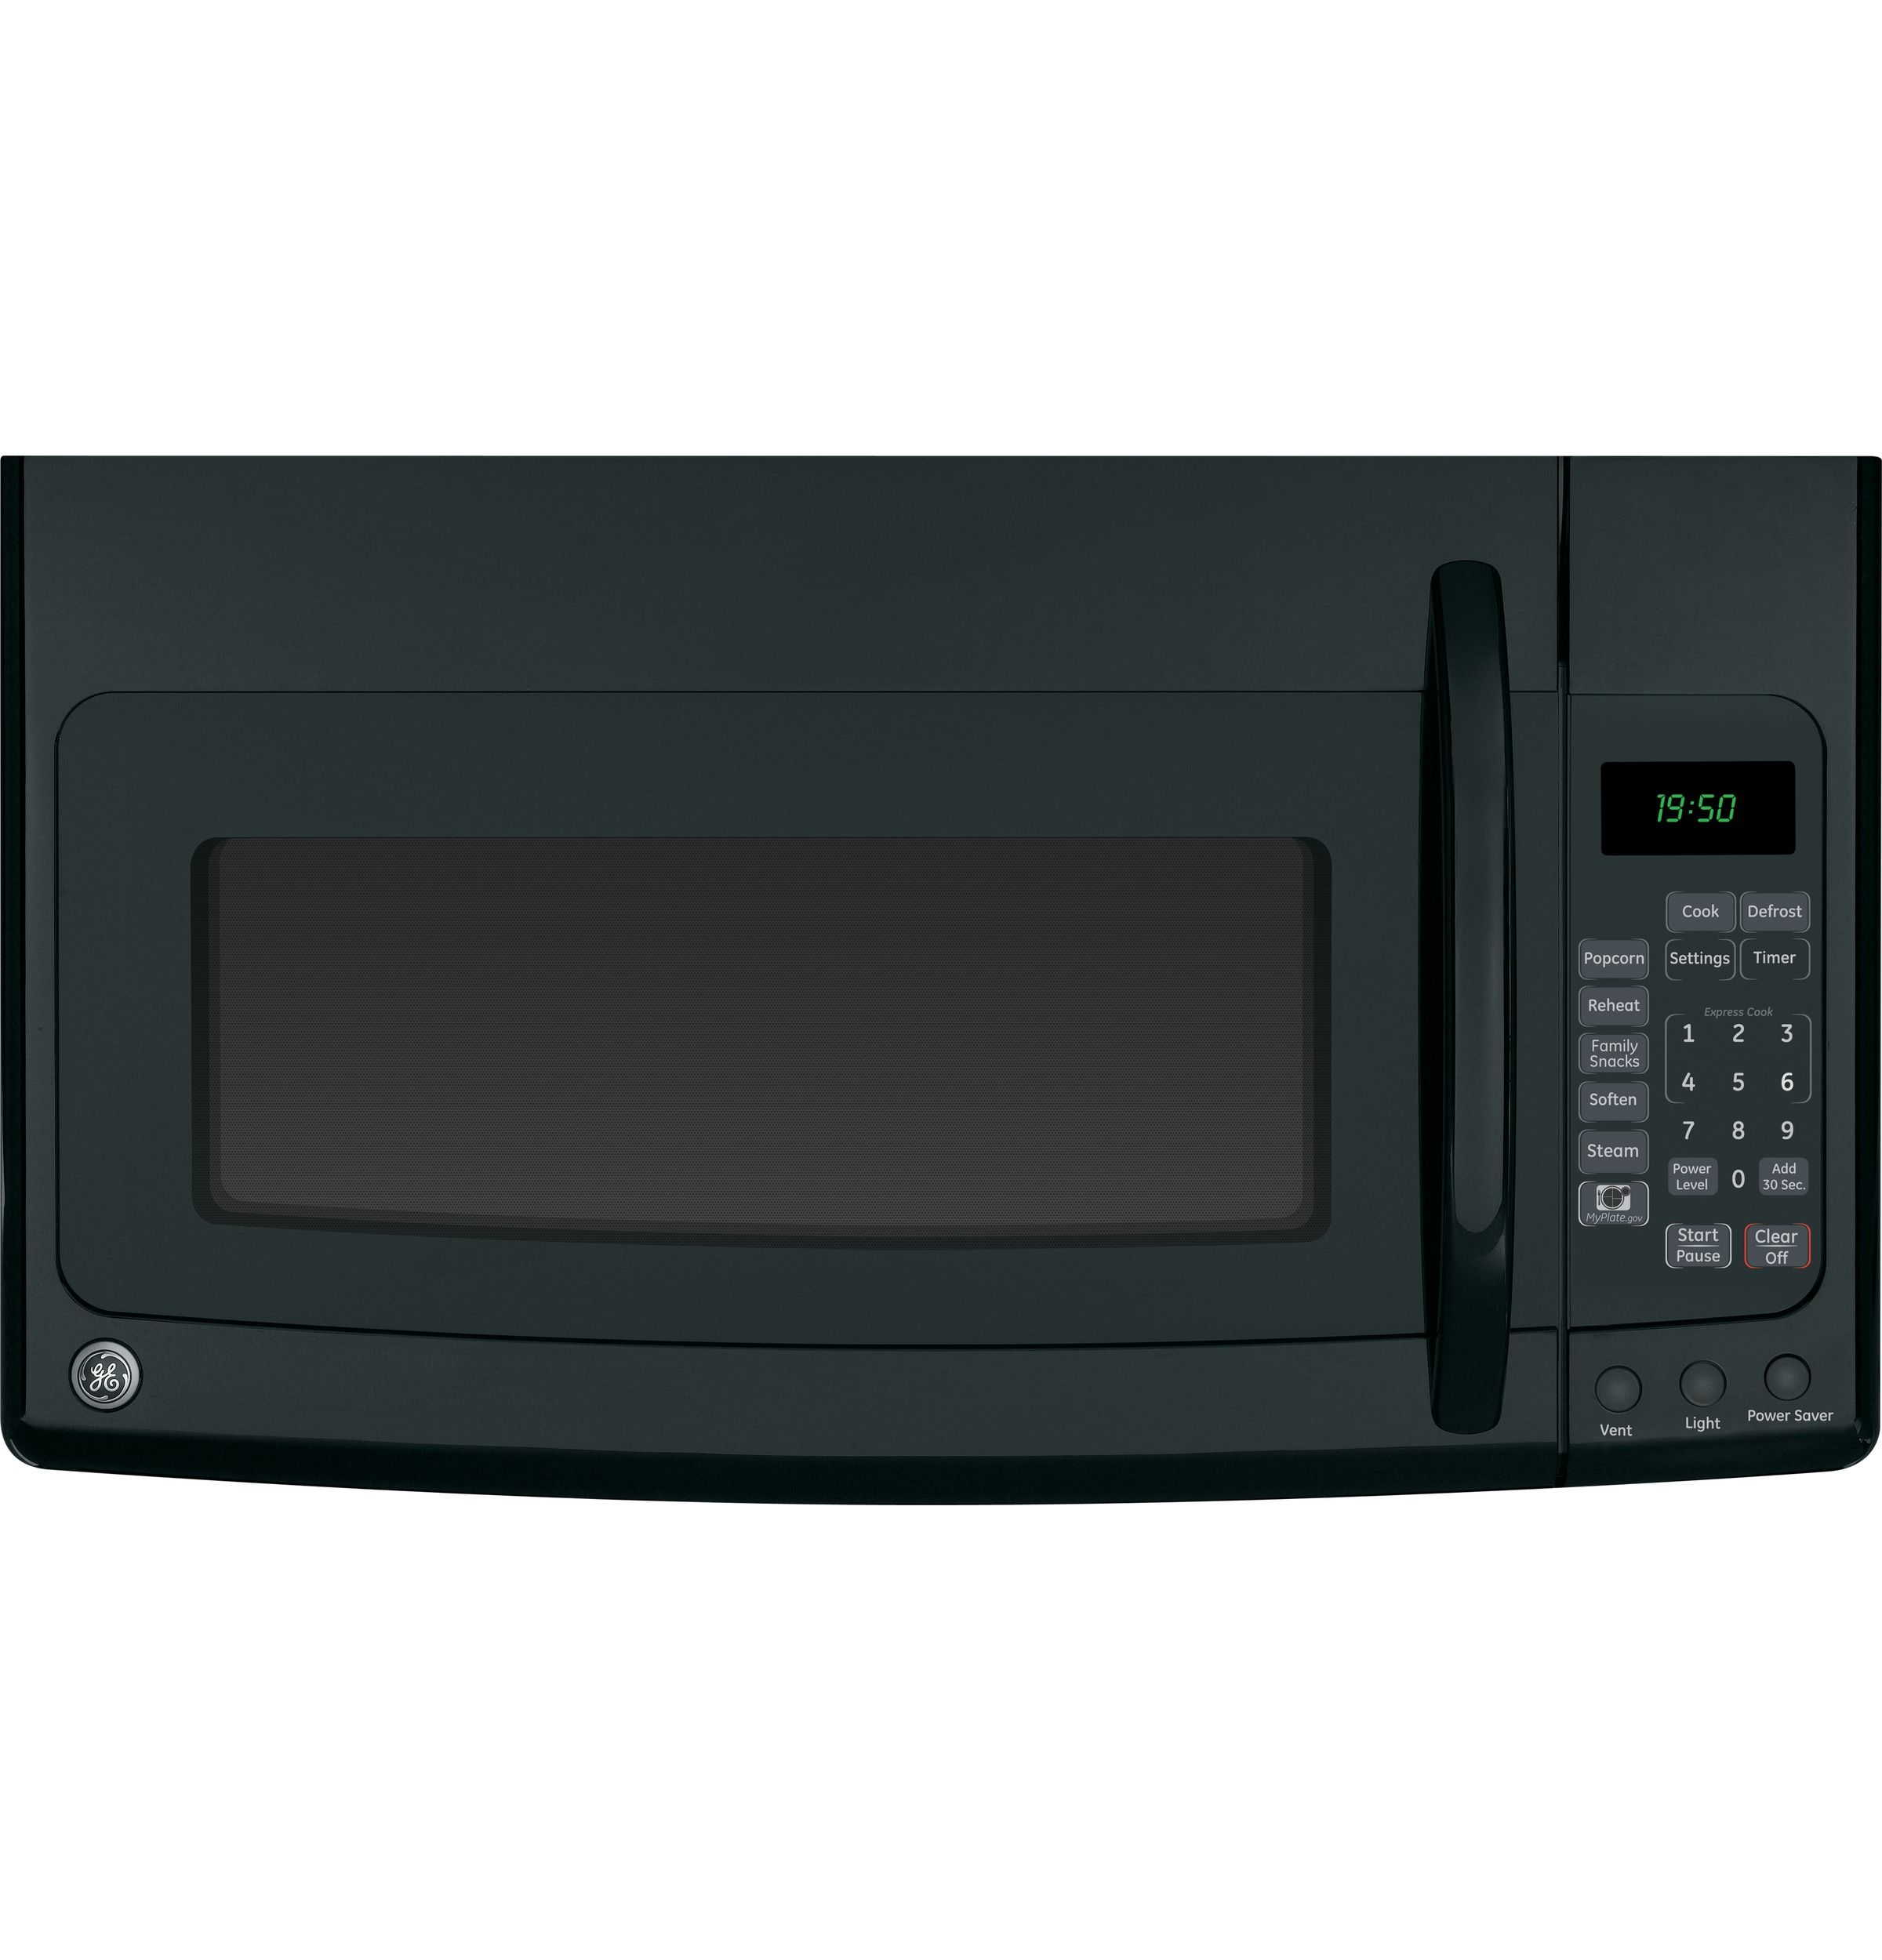 Ge Spacemaker 1 9 Over The Range Microwave Oven Jvm1950drbb Range Microwave Kitchen Appliances Cool Kitchens